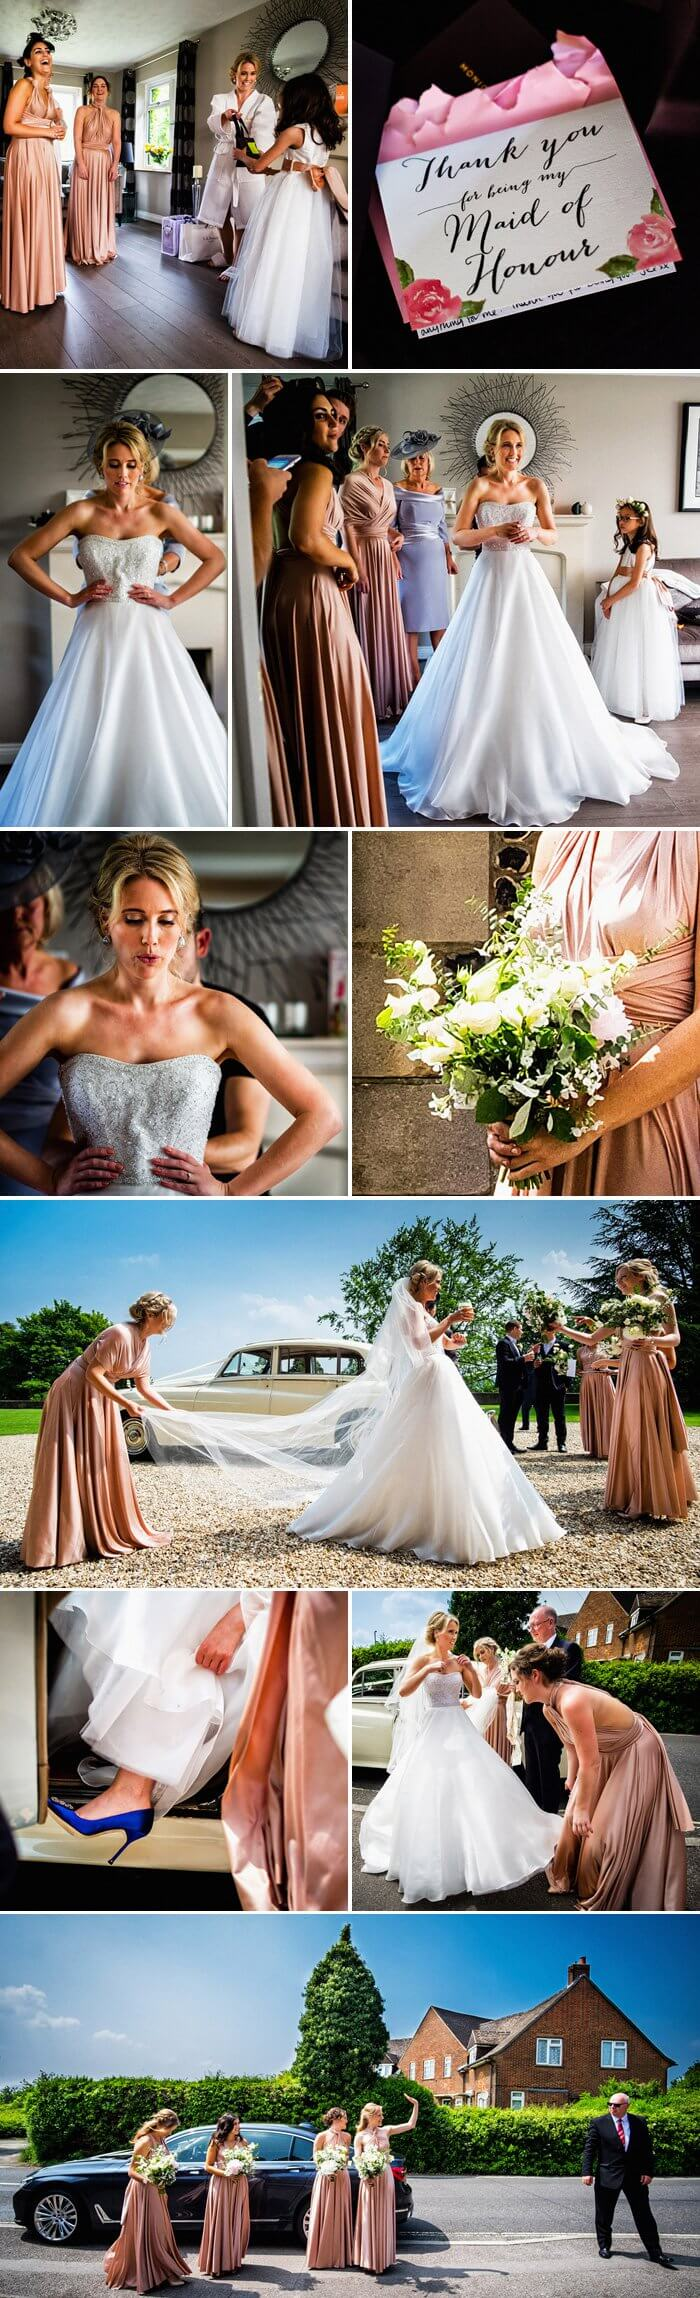 1632424766 167 English wedding in the castle 2 charming photo stories - English wedding in the castle   2 charming photo stories with many inspirations